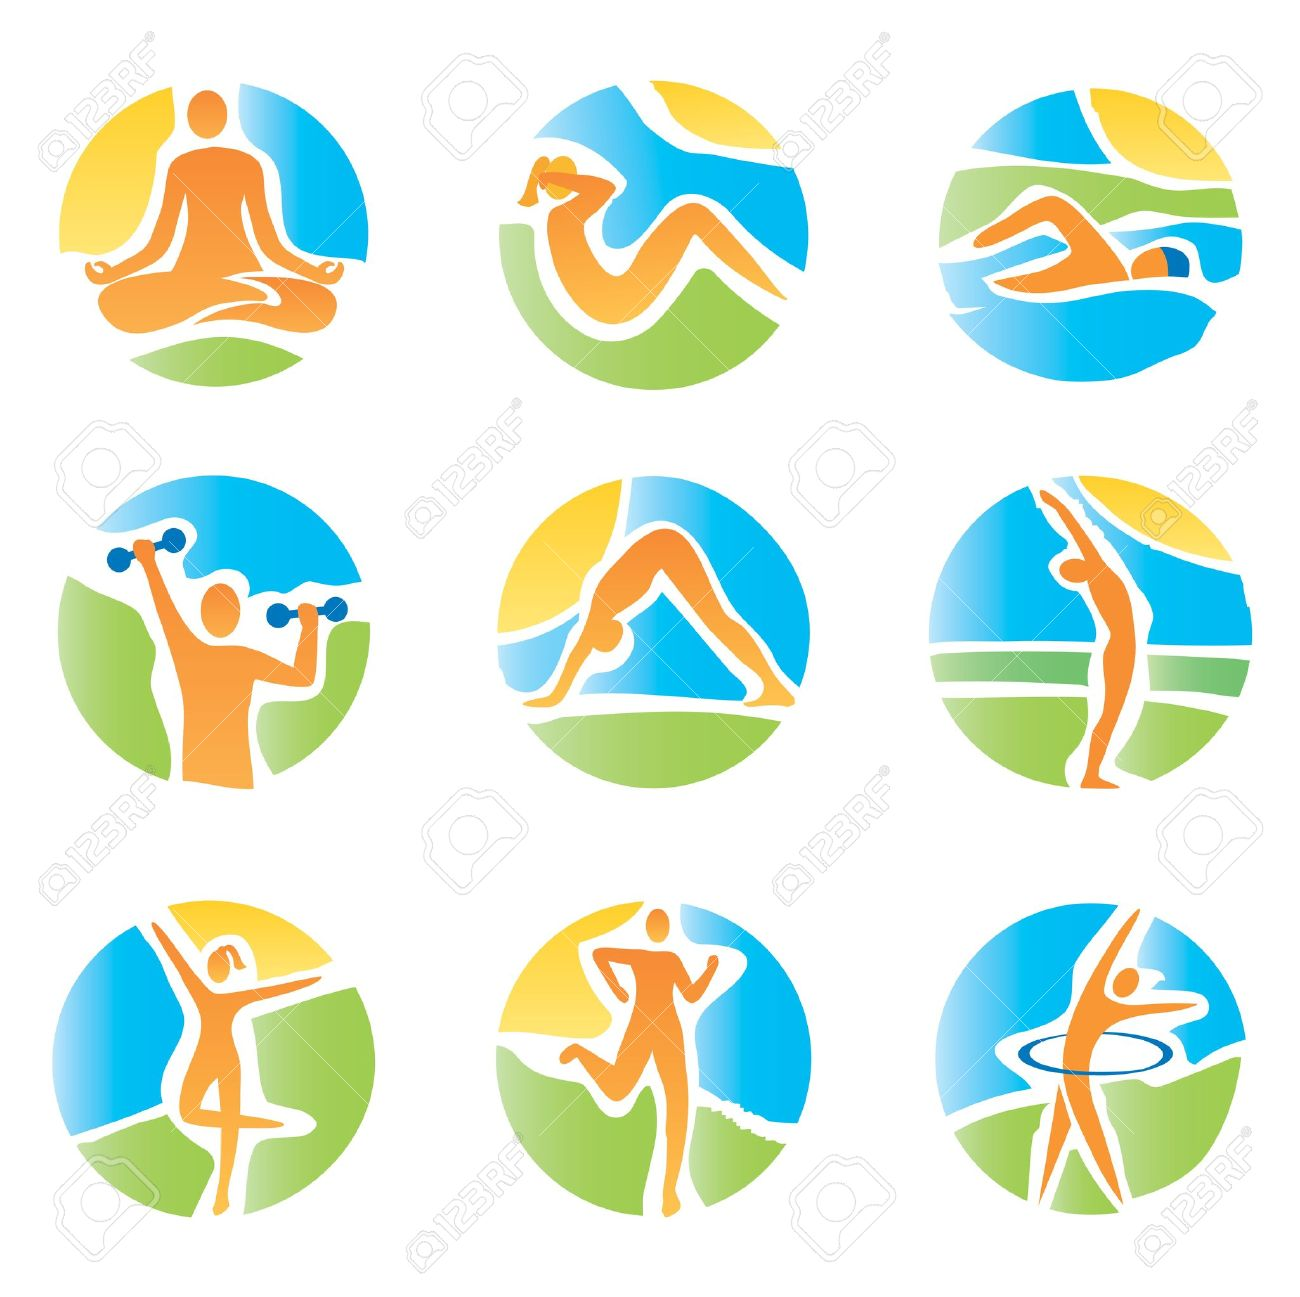 Colorful icons with fitness and healthy lifestyle activities on an abstract landscape background  Expressive watercolor imitating vector illustration Stock Vector - 19428321